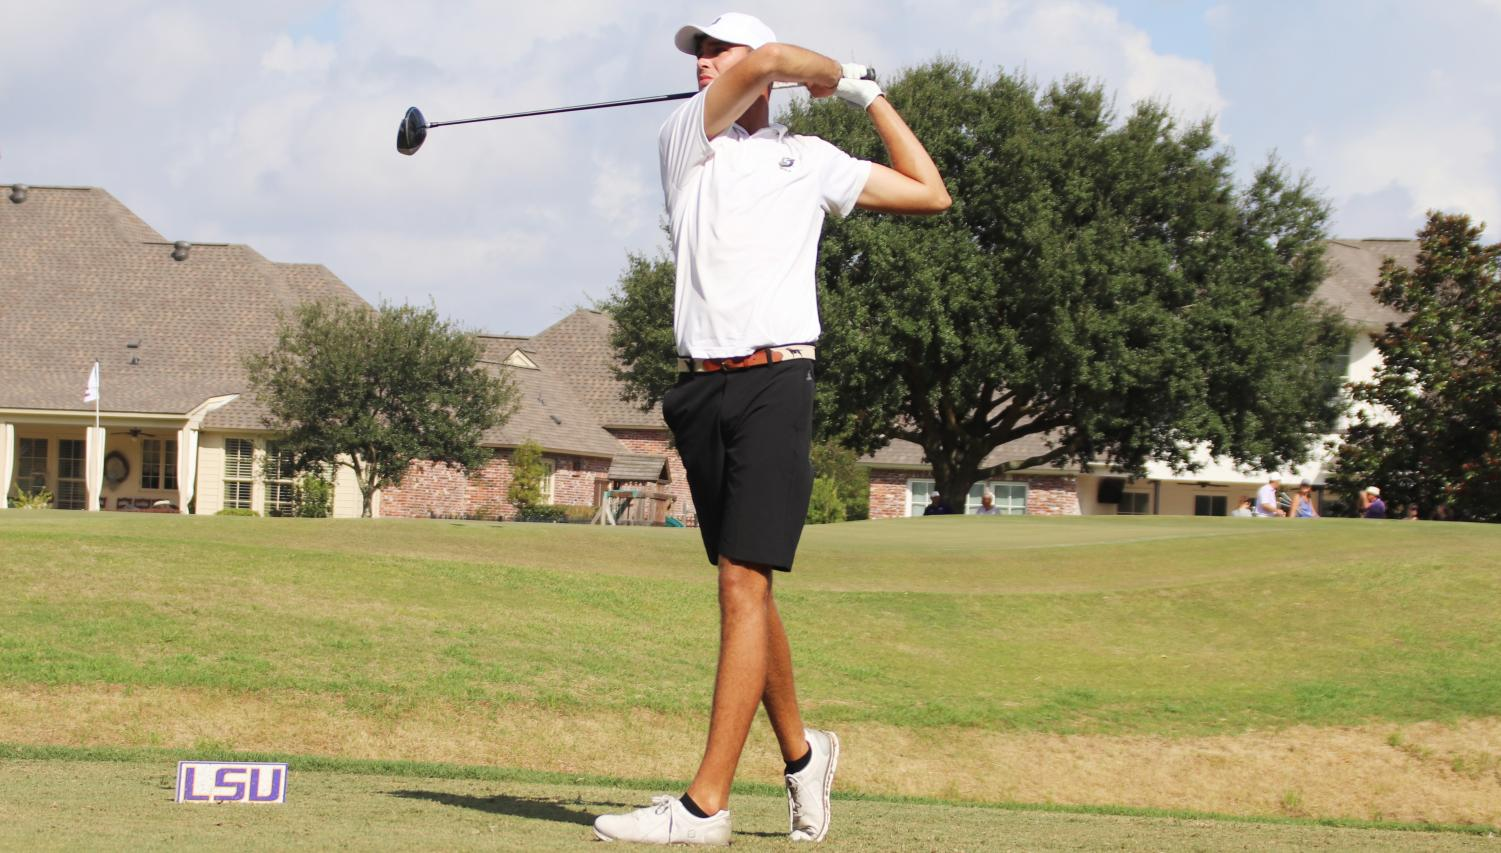 The university golf team faced 14 teams from 13 universities at the David Toms Intercollegiate.